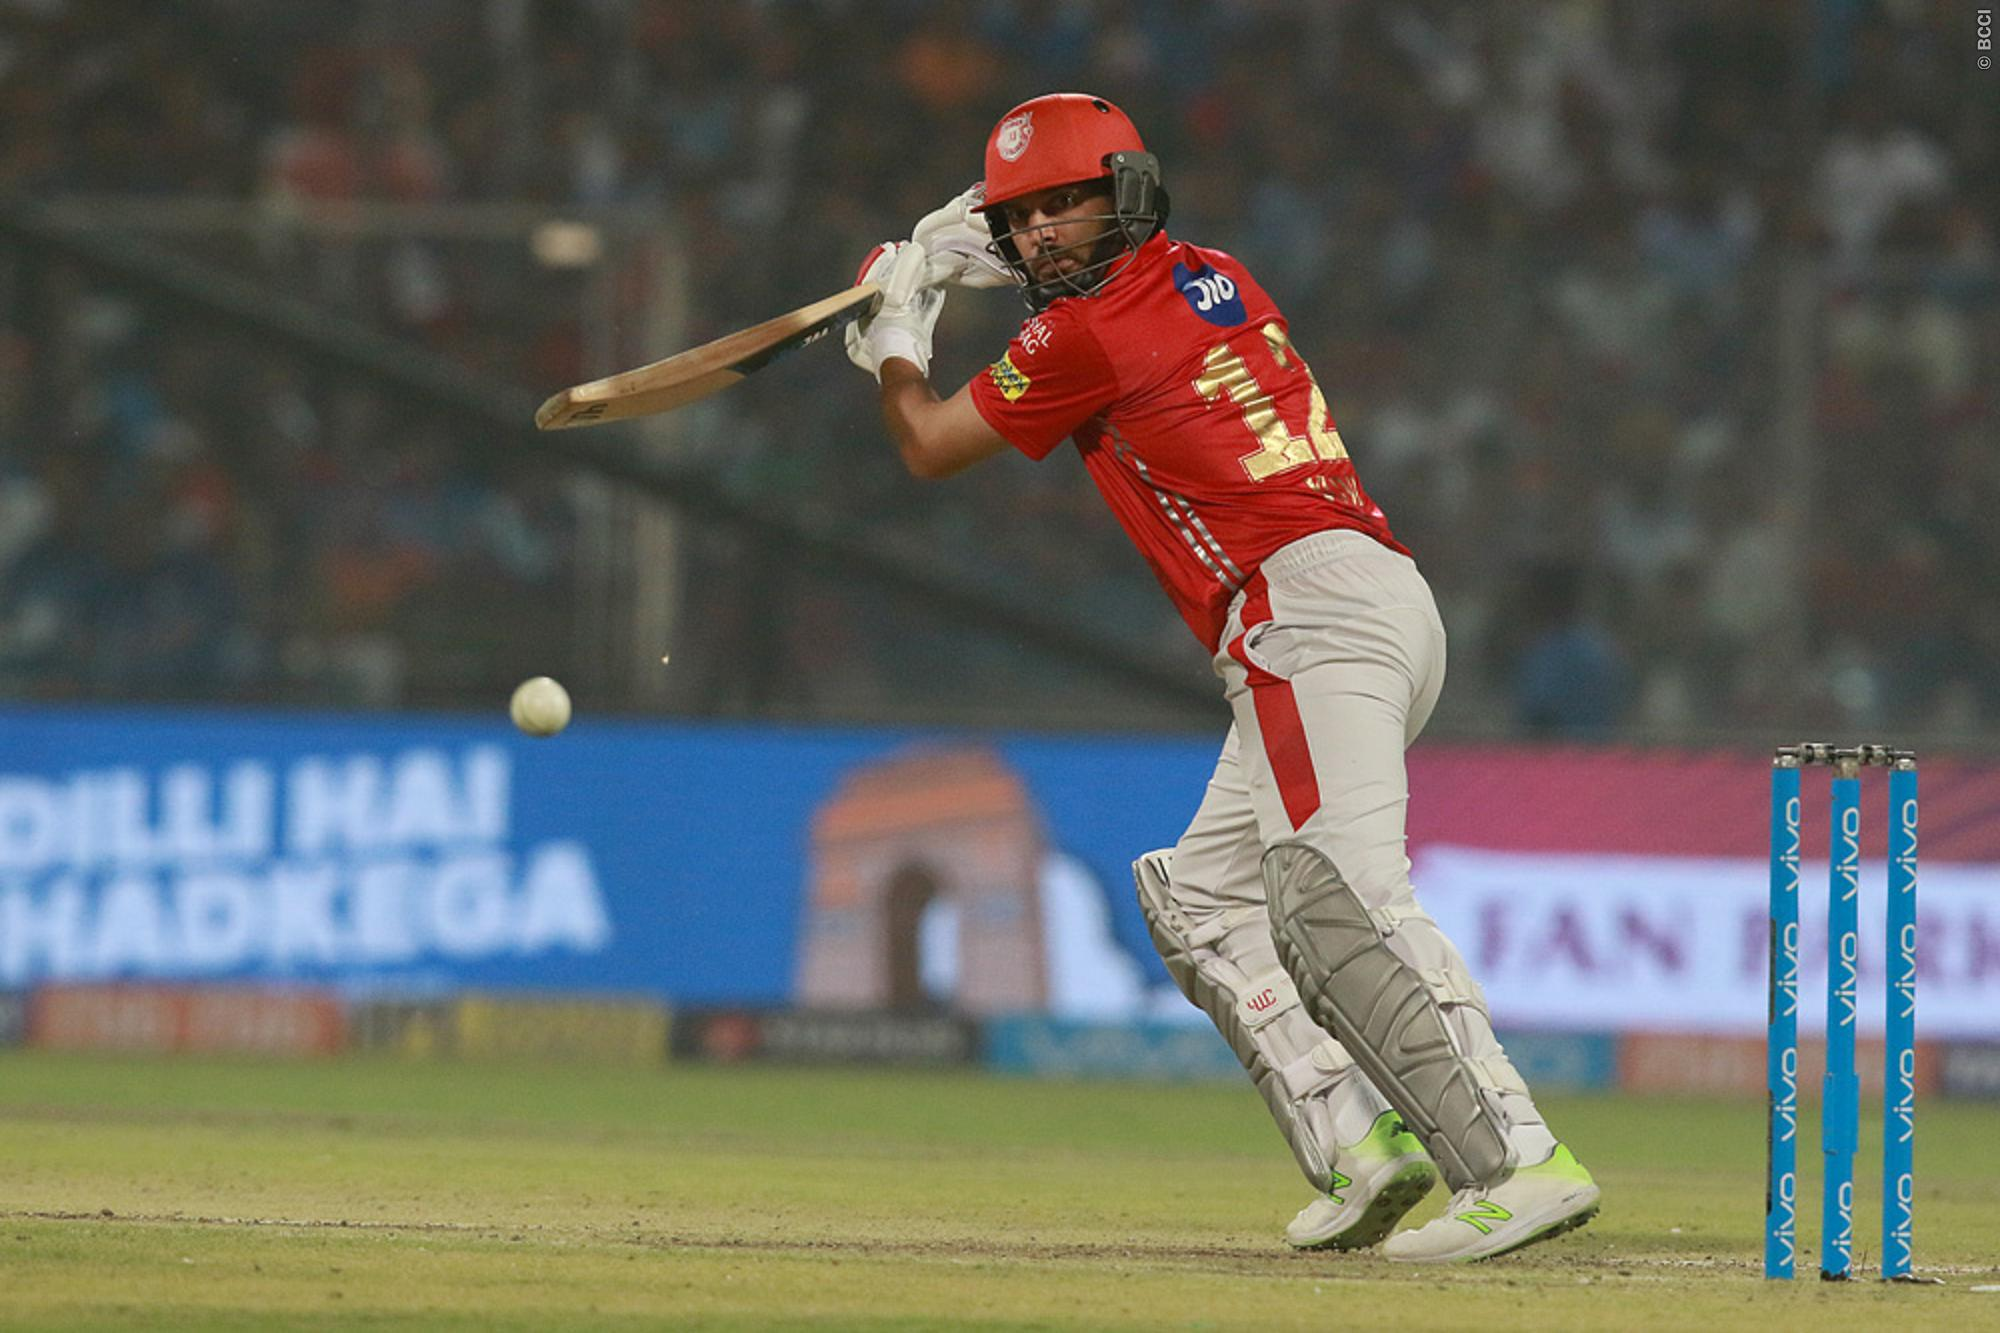 IPL 2019: Players who could be playing their last season 3